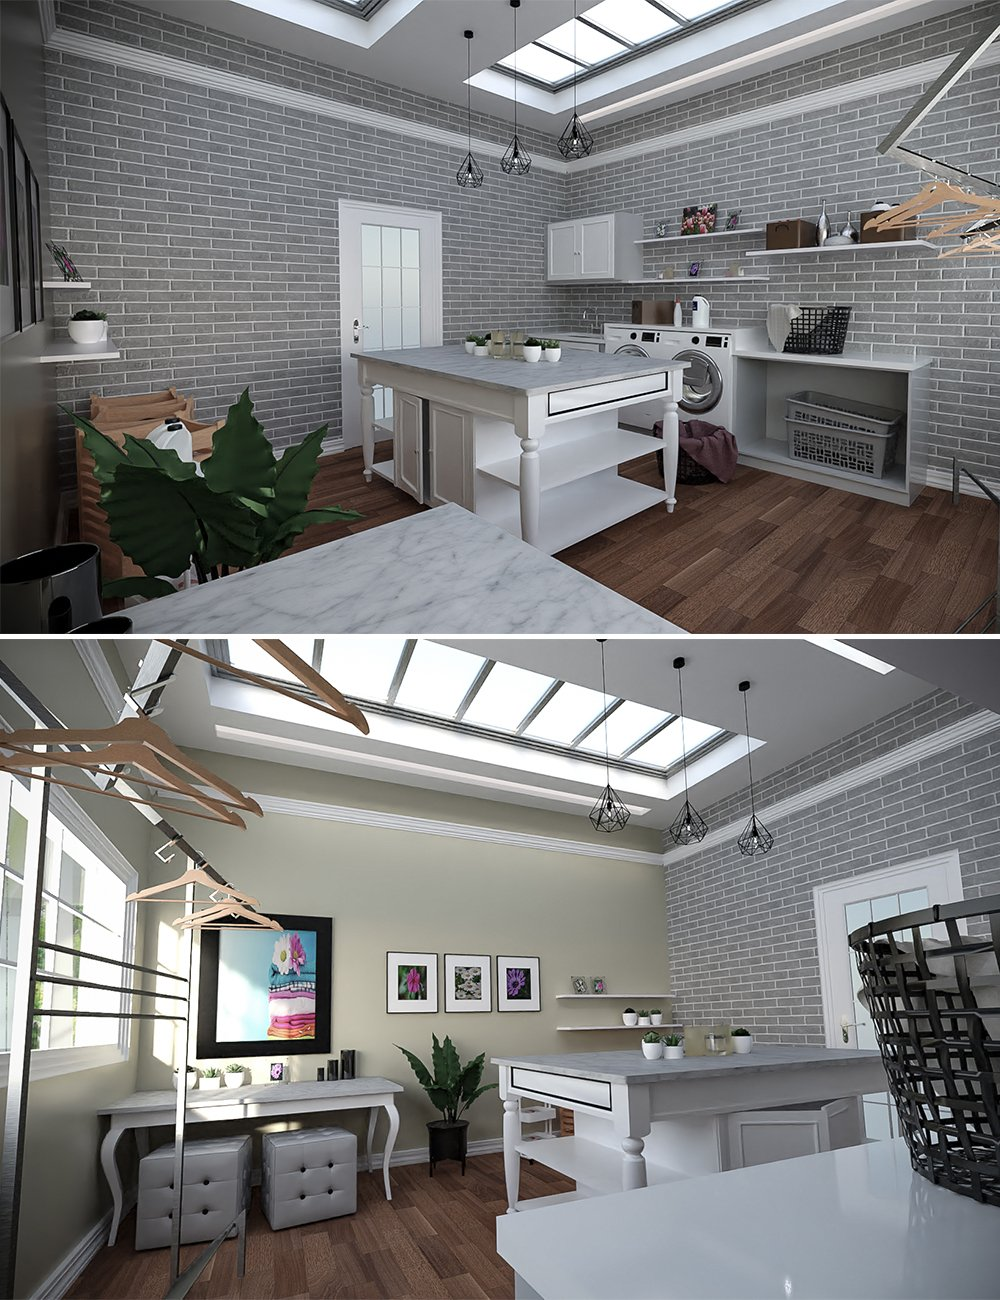 Laundry Room by: Tesla3dCorp, 3D Models by Daz 3D